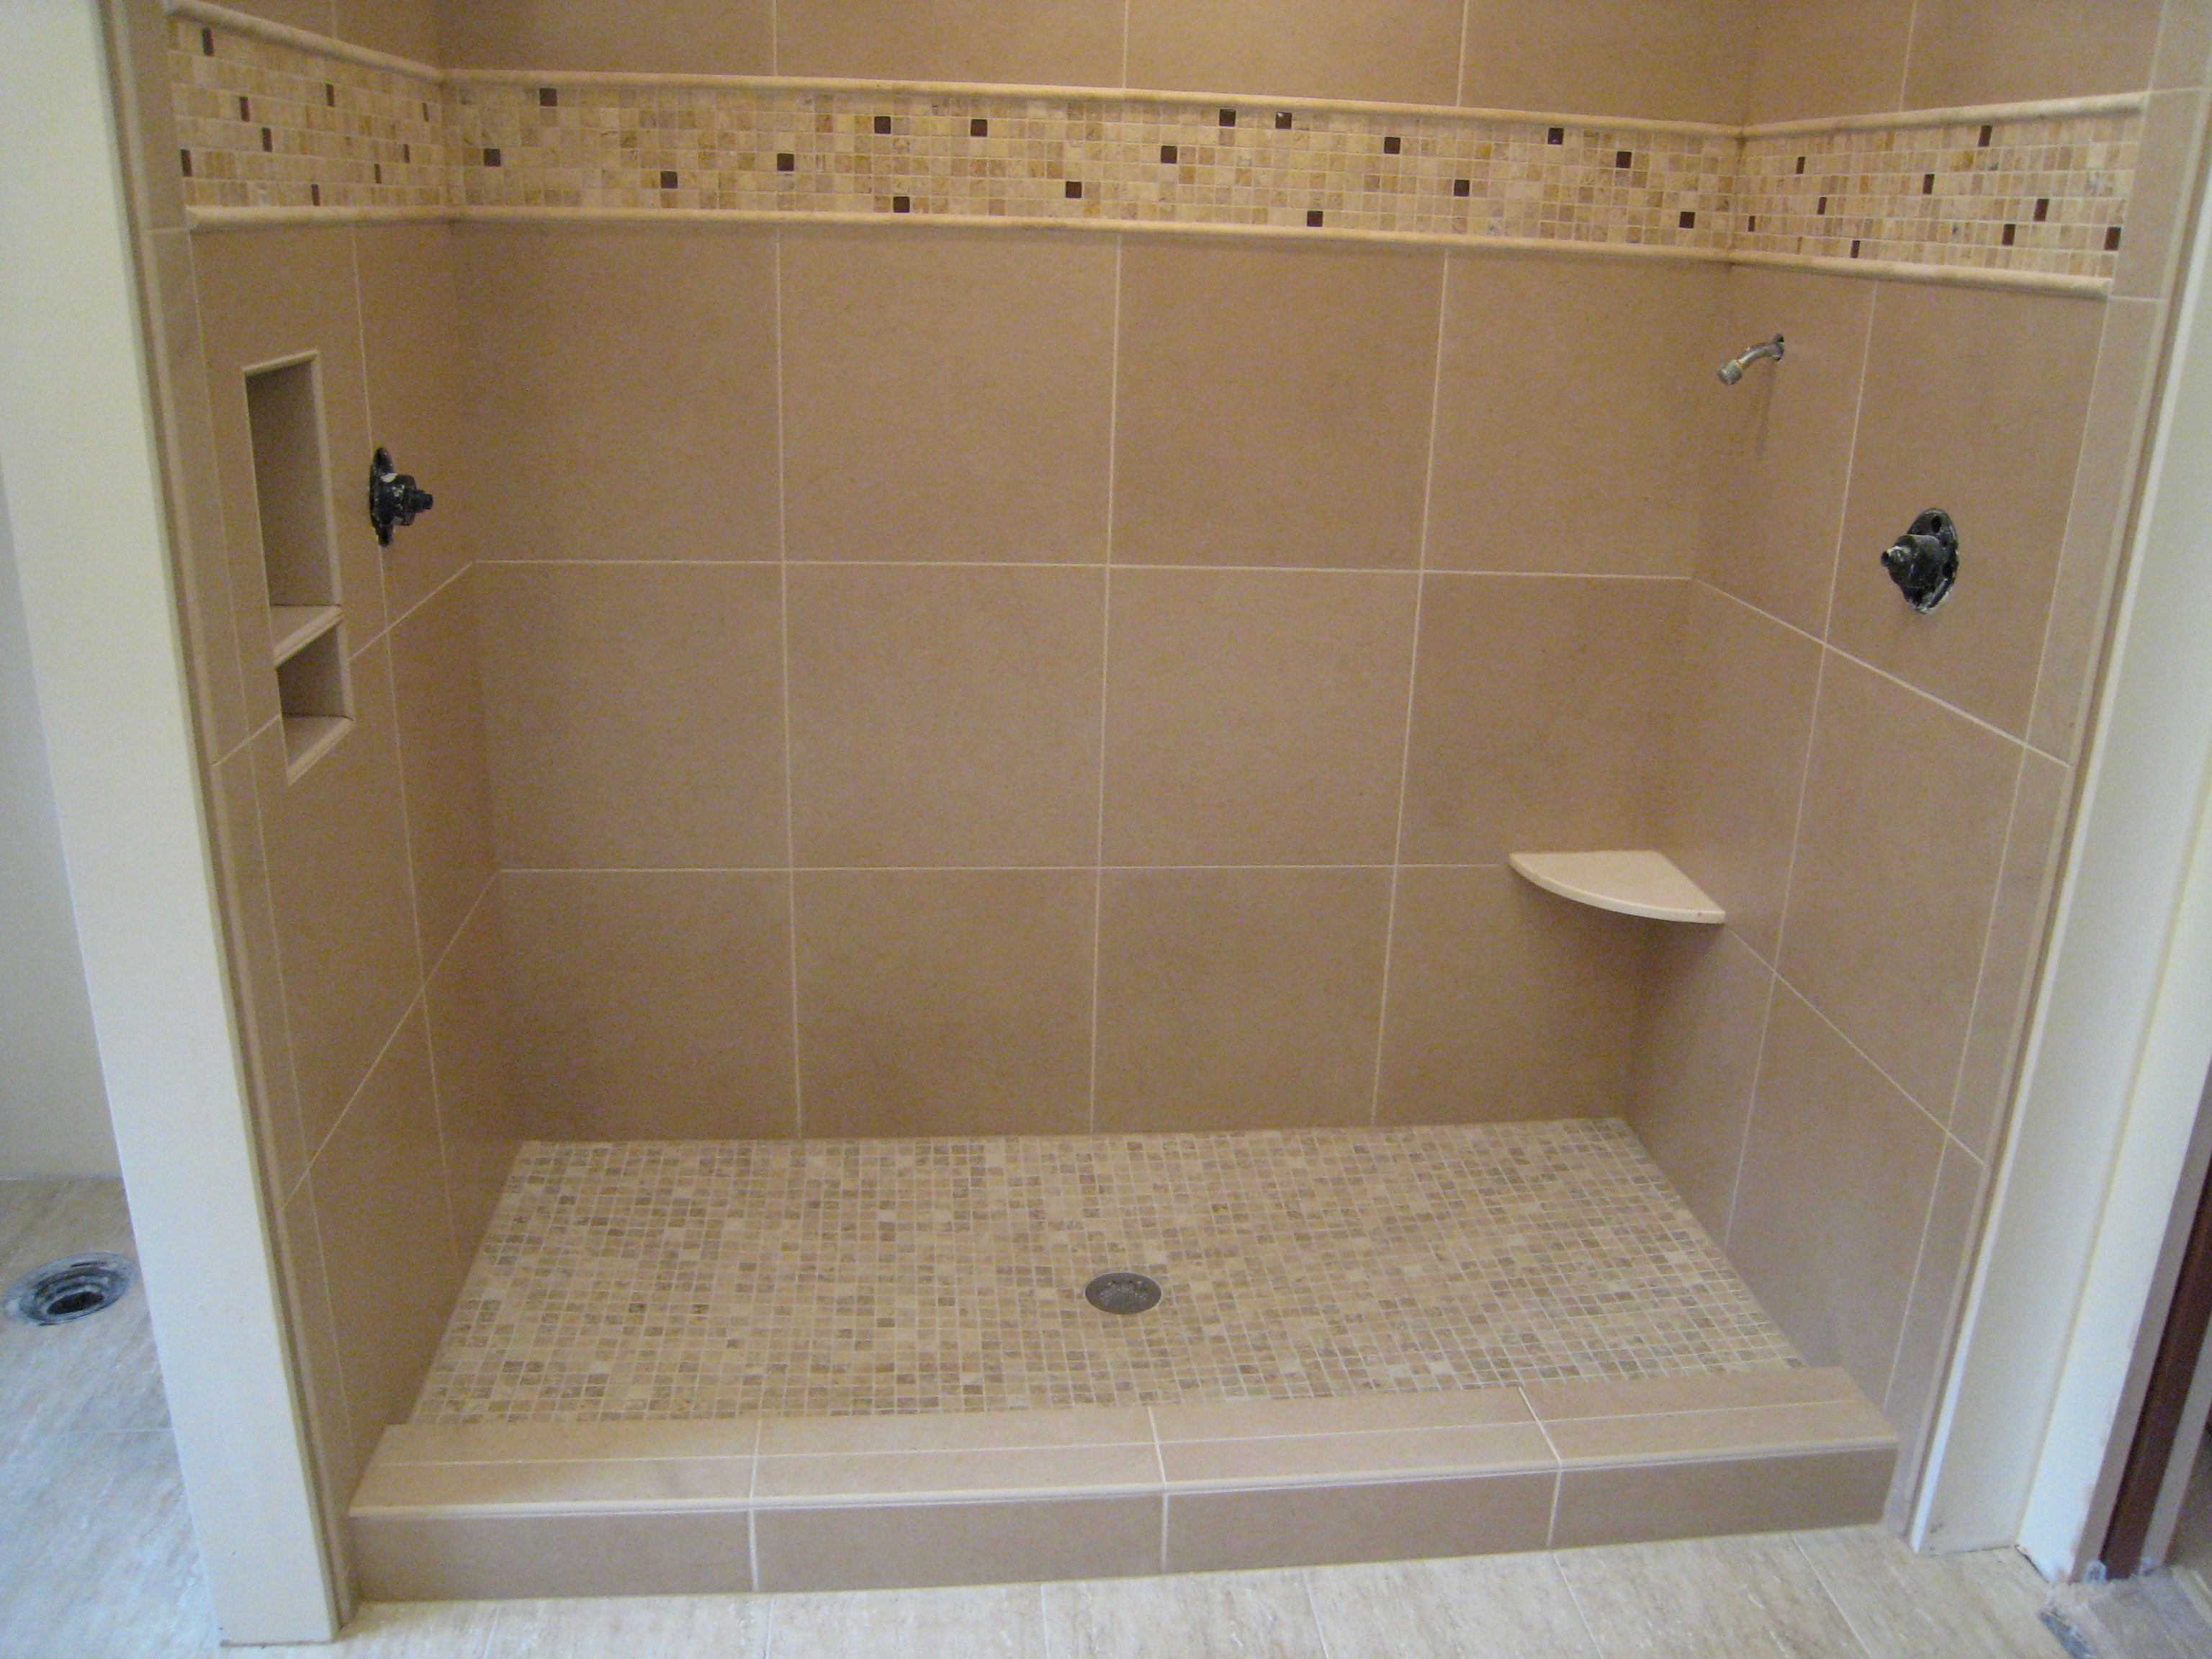 mobile home shower stalls with Dmj Tile Services Reviews 356148 on 4747501 additionally 1000009556 further 50280477 as well Gallery in addition Home Interior 56574.